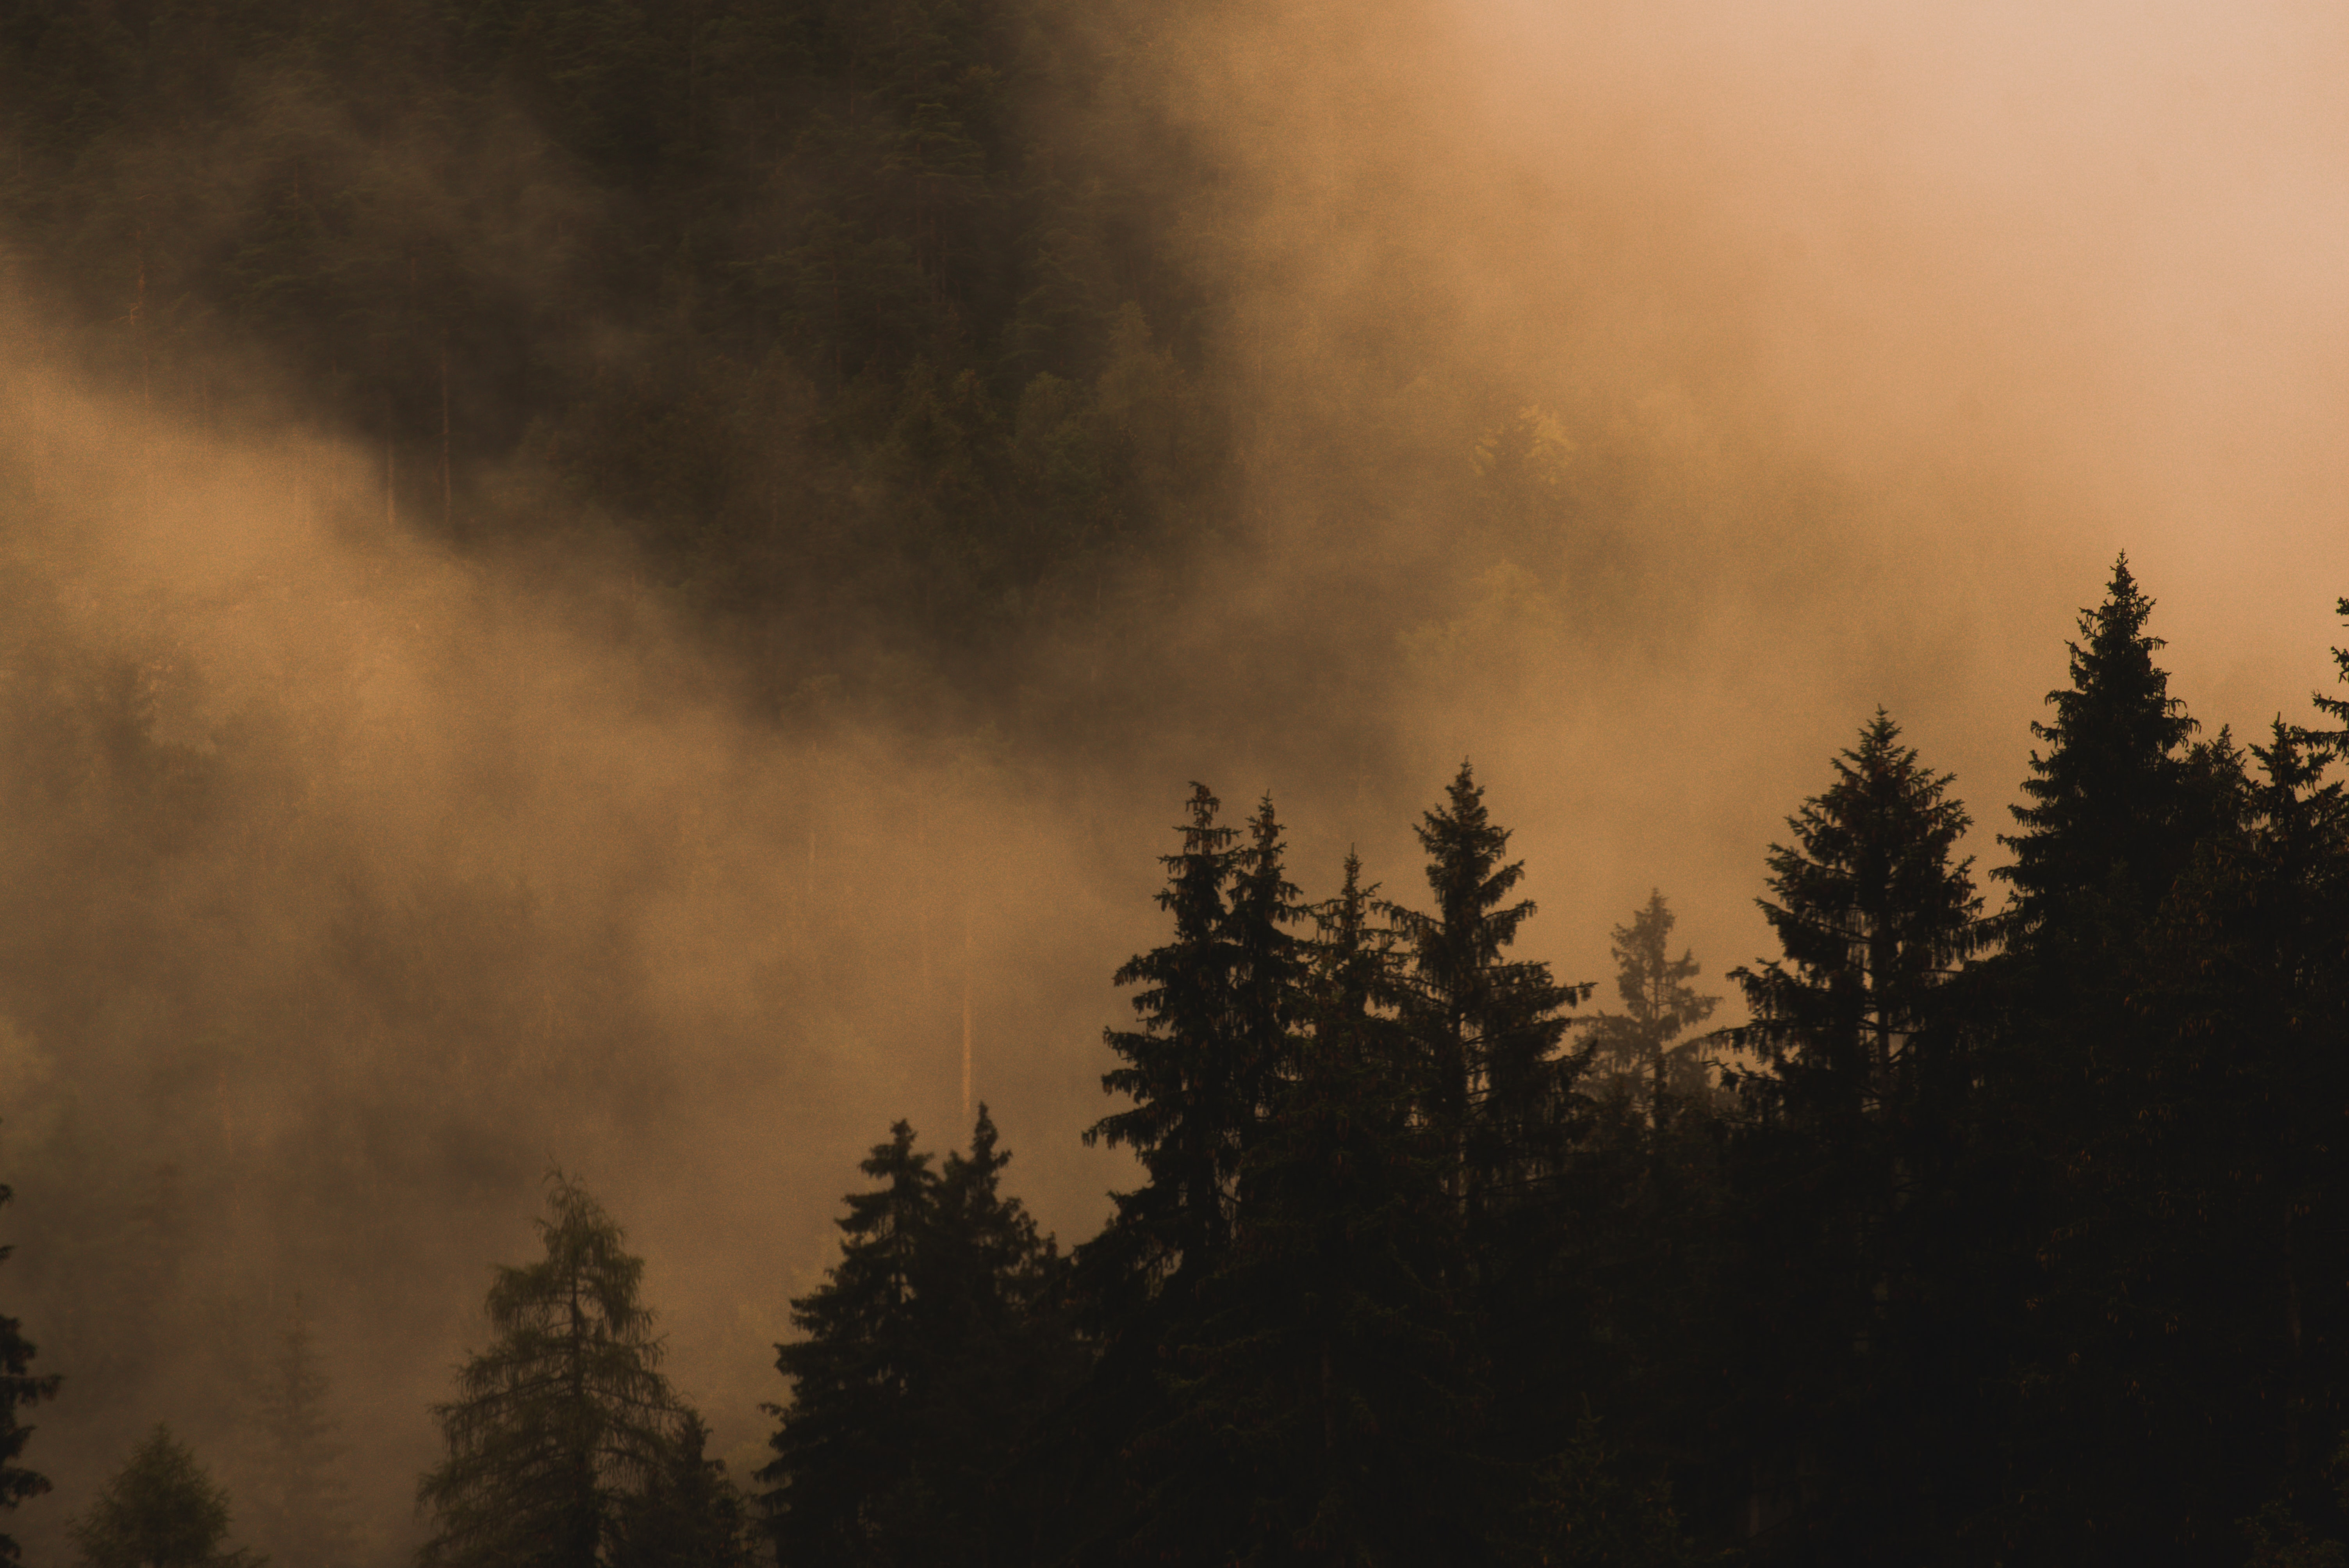 156748 download wallpaper Nature, Spruce, Fir, Trees, Fog, Smoke screensavers and pictures for free